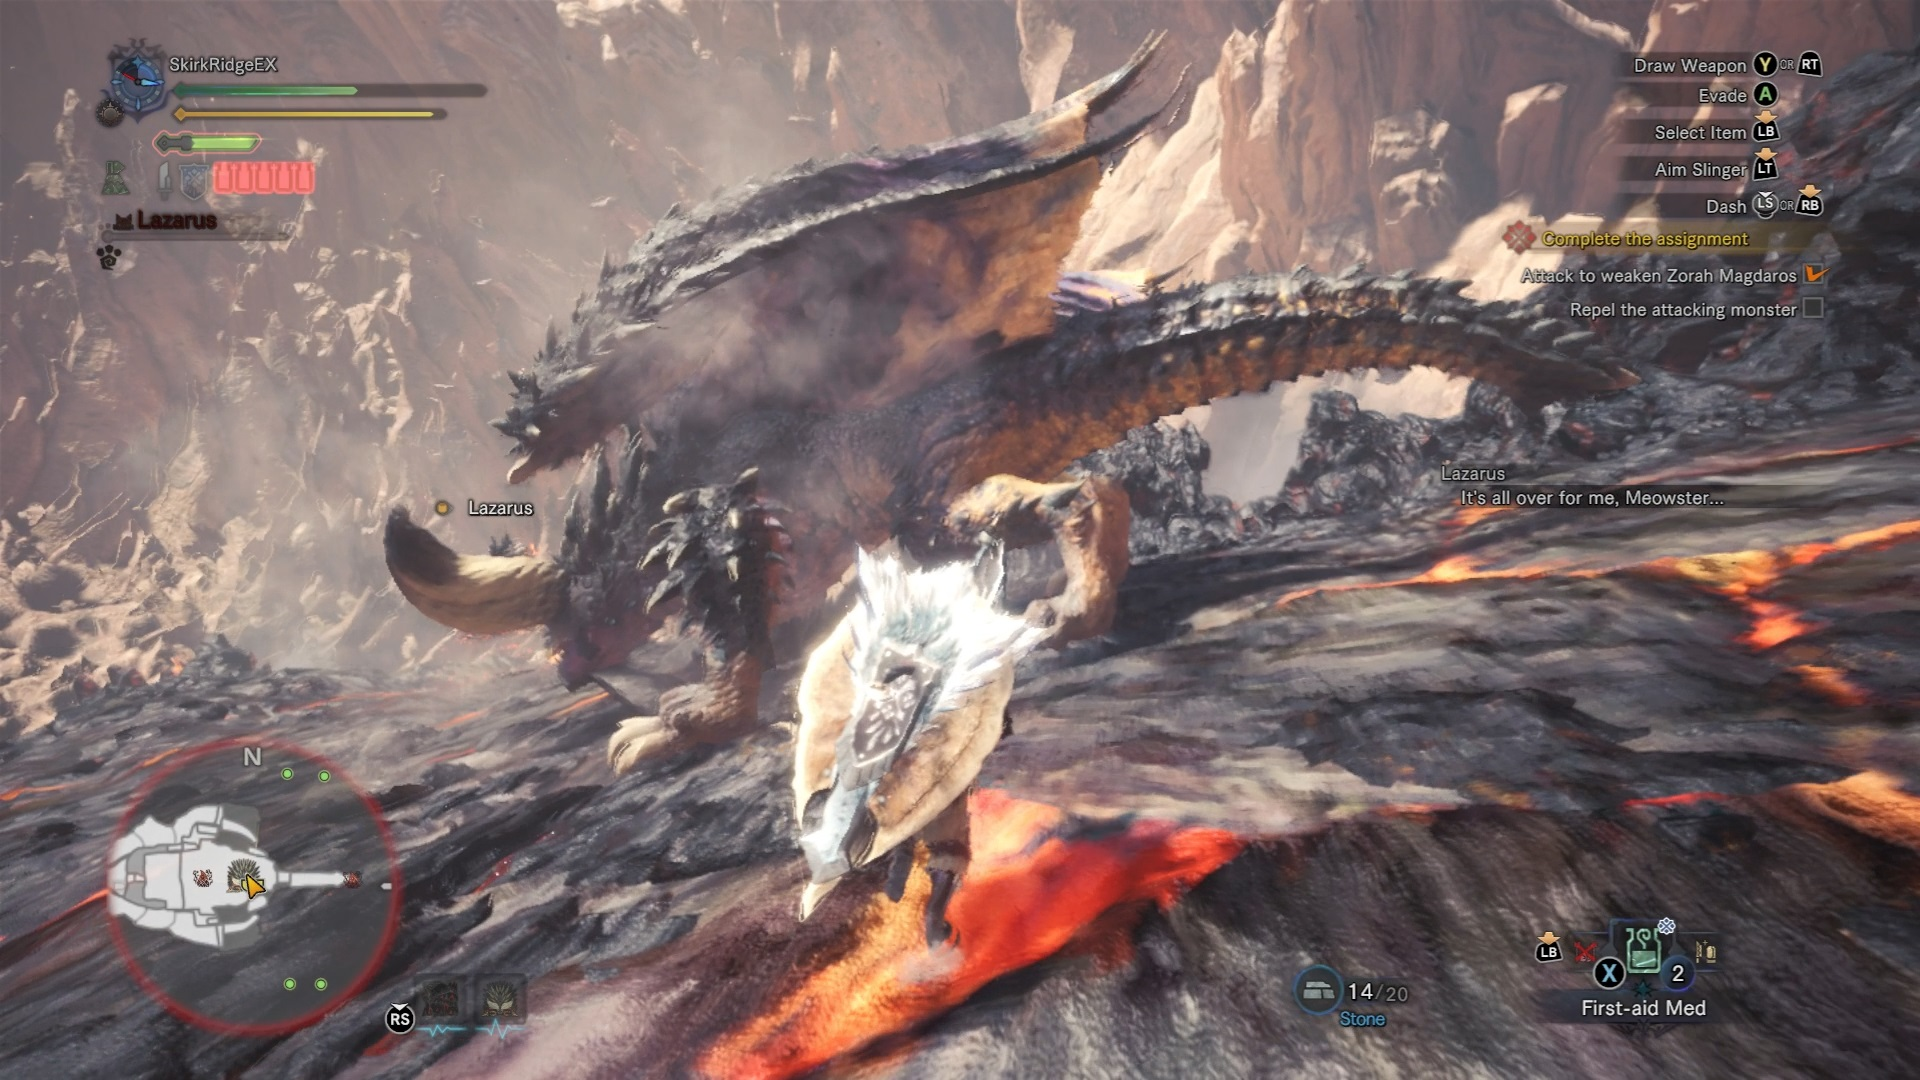 A mysterious dragon appears on Zorah Magdaros